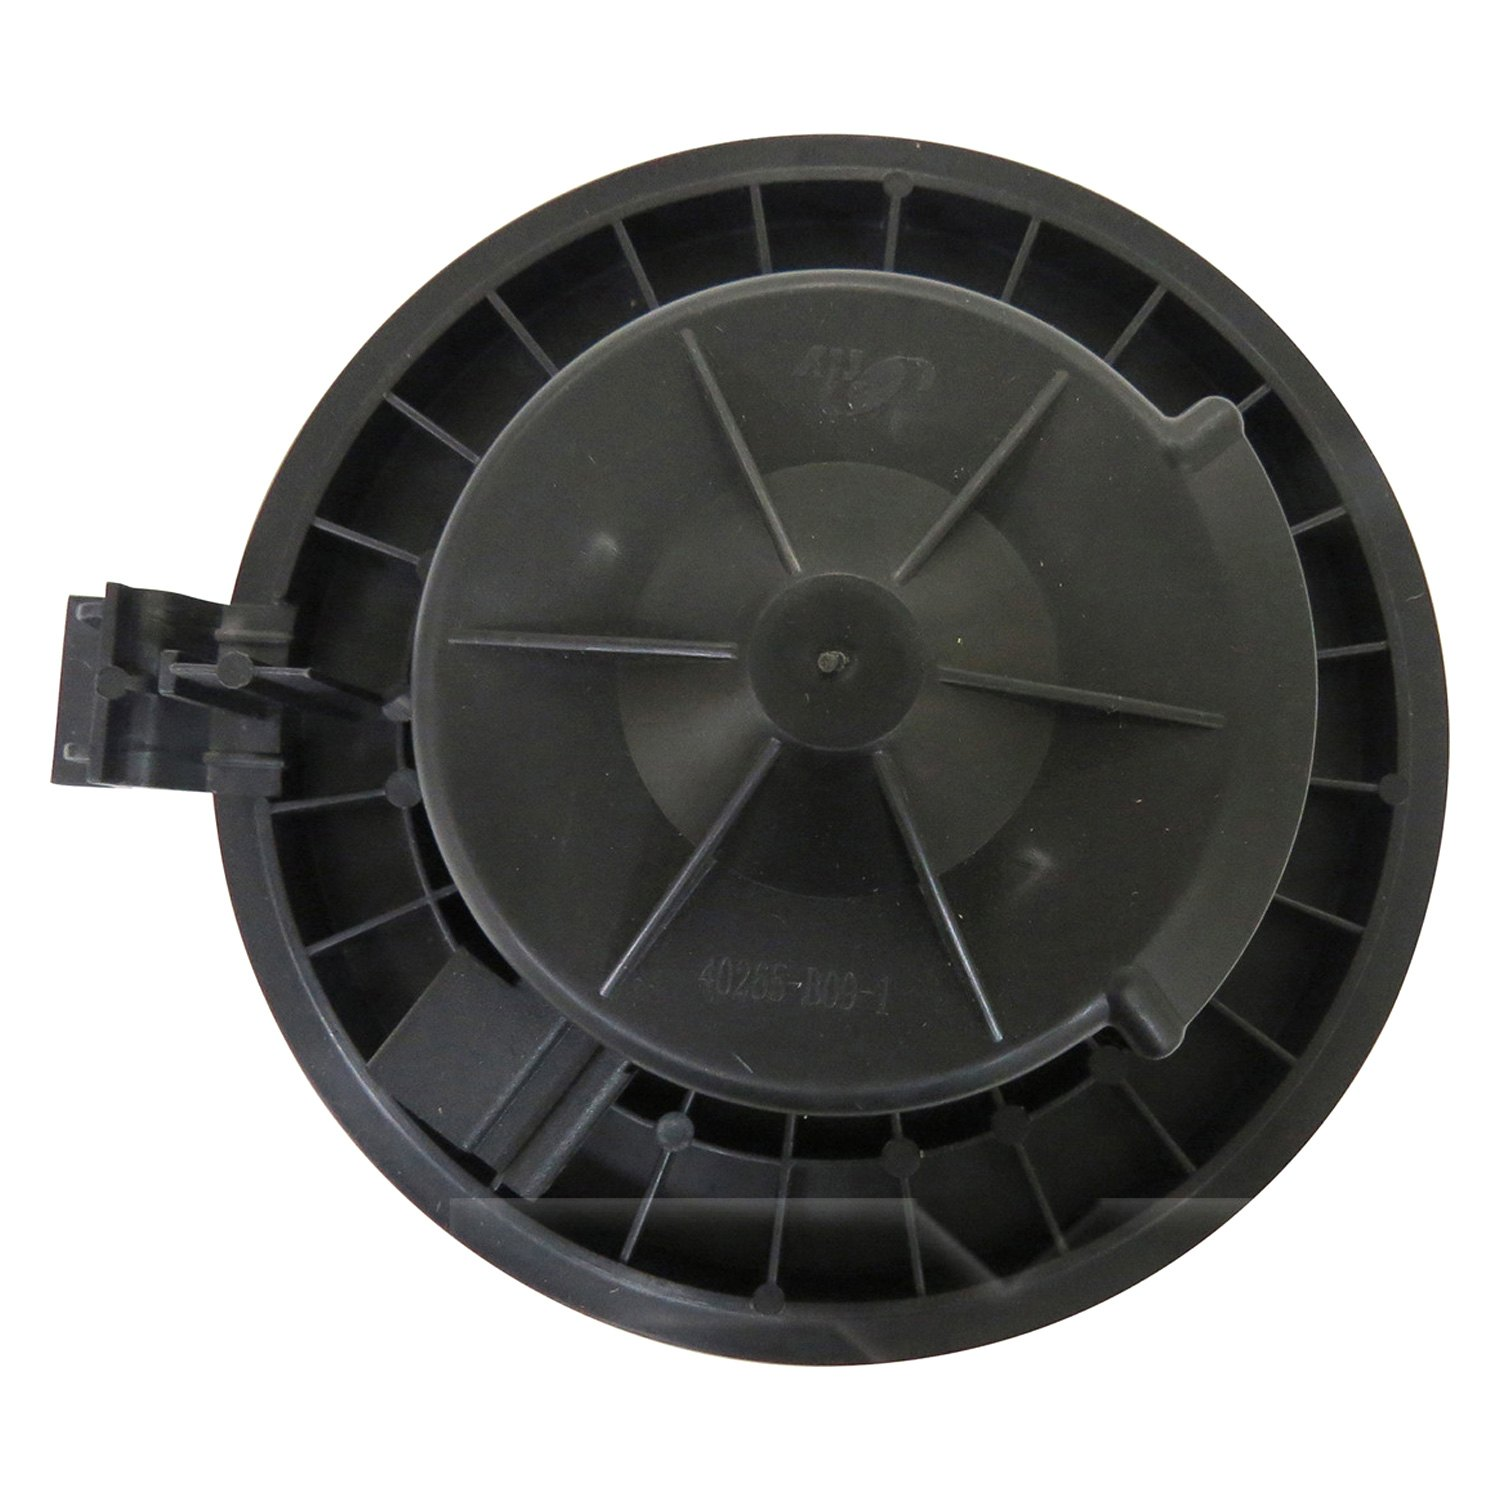 TYC 700287 Replacement Blower Assembly